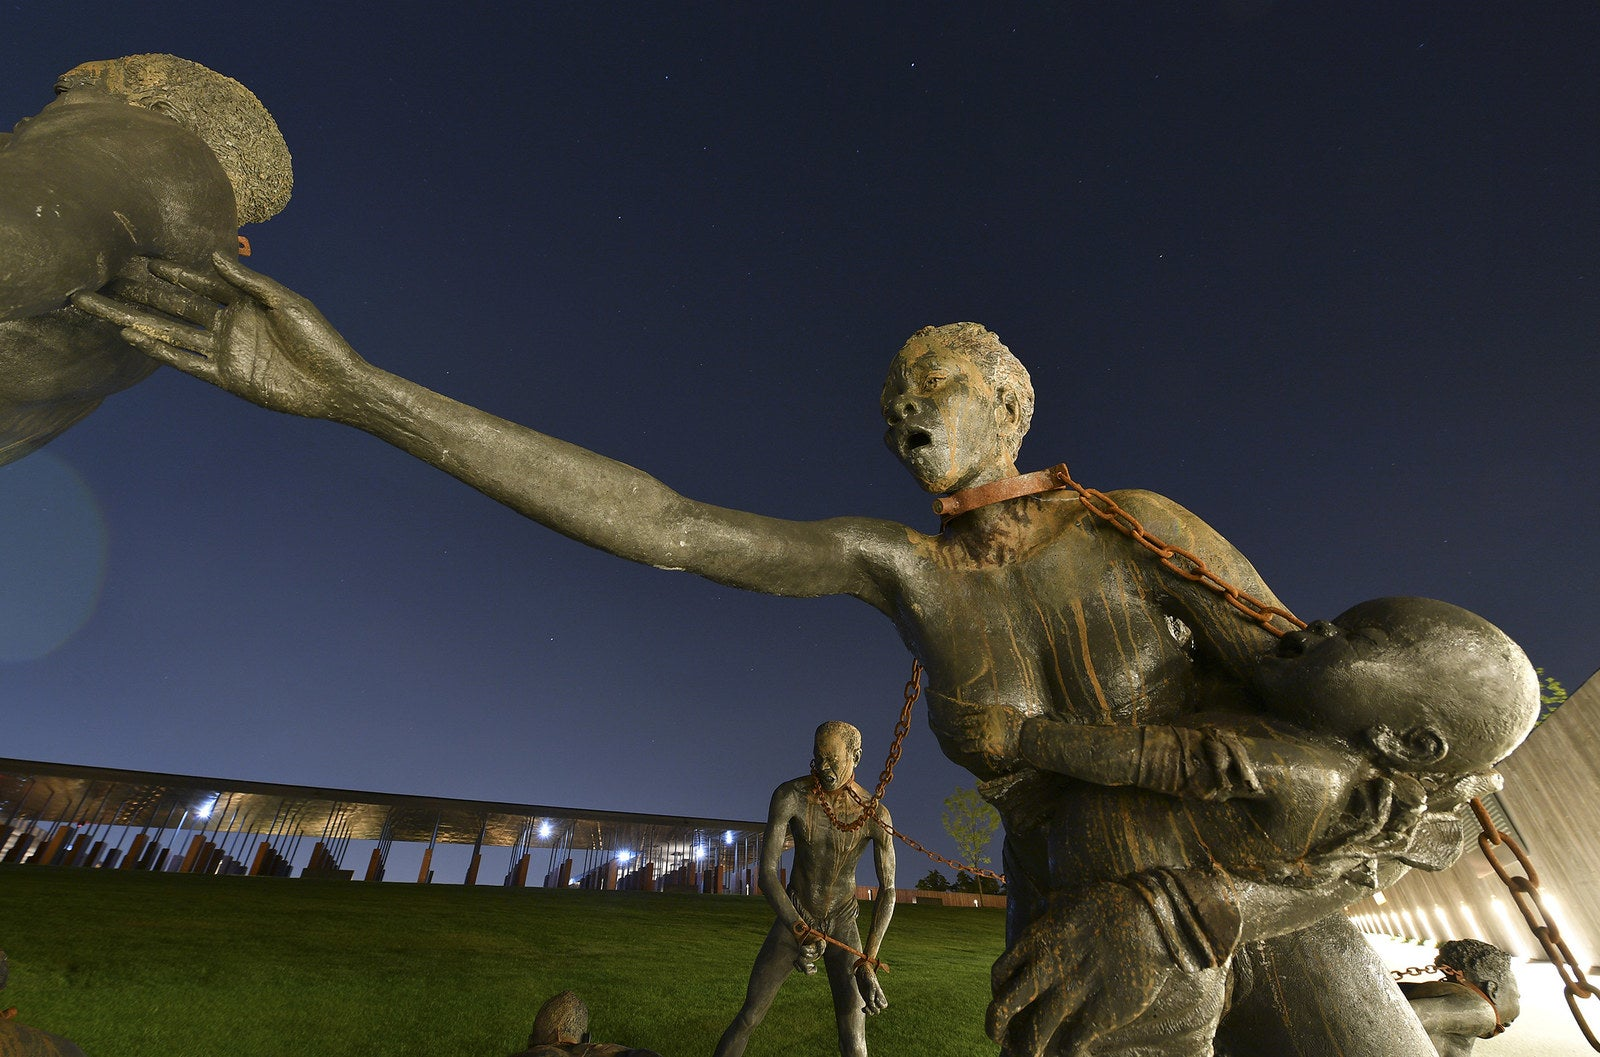 A sculpture by artist Kwame Akoto-Bamfo of enslaved people in chains at The National Memorial for Peace and Justice.